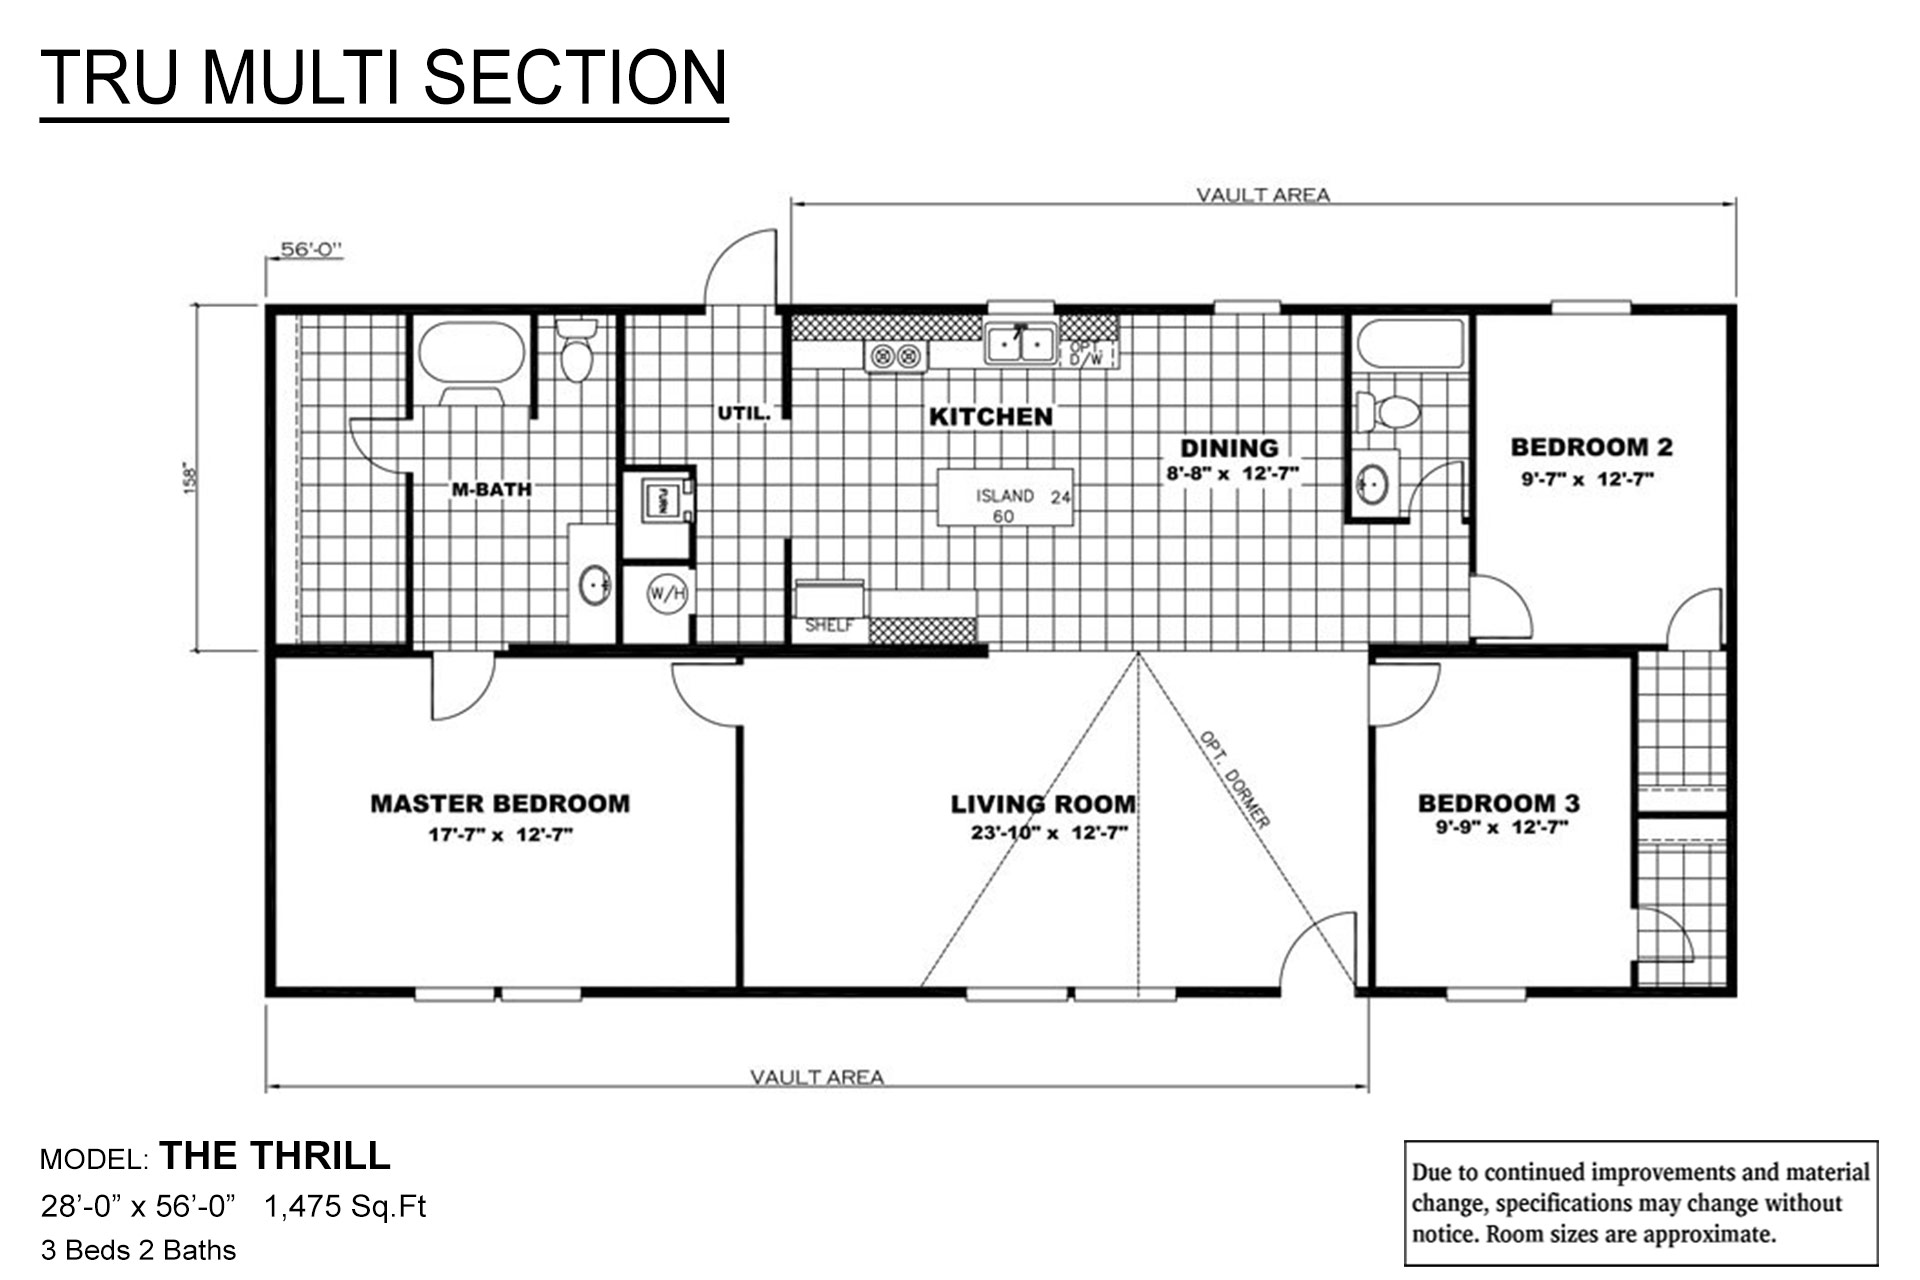 TRU Multi Section Thrill Layout